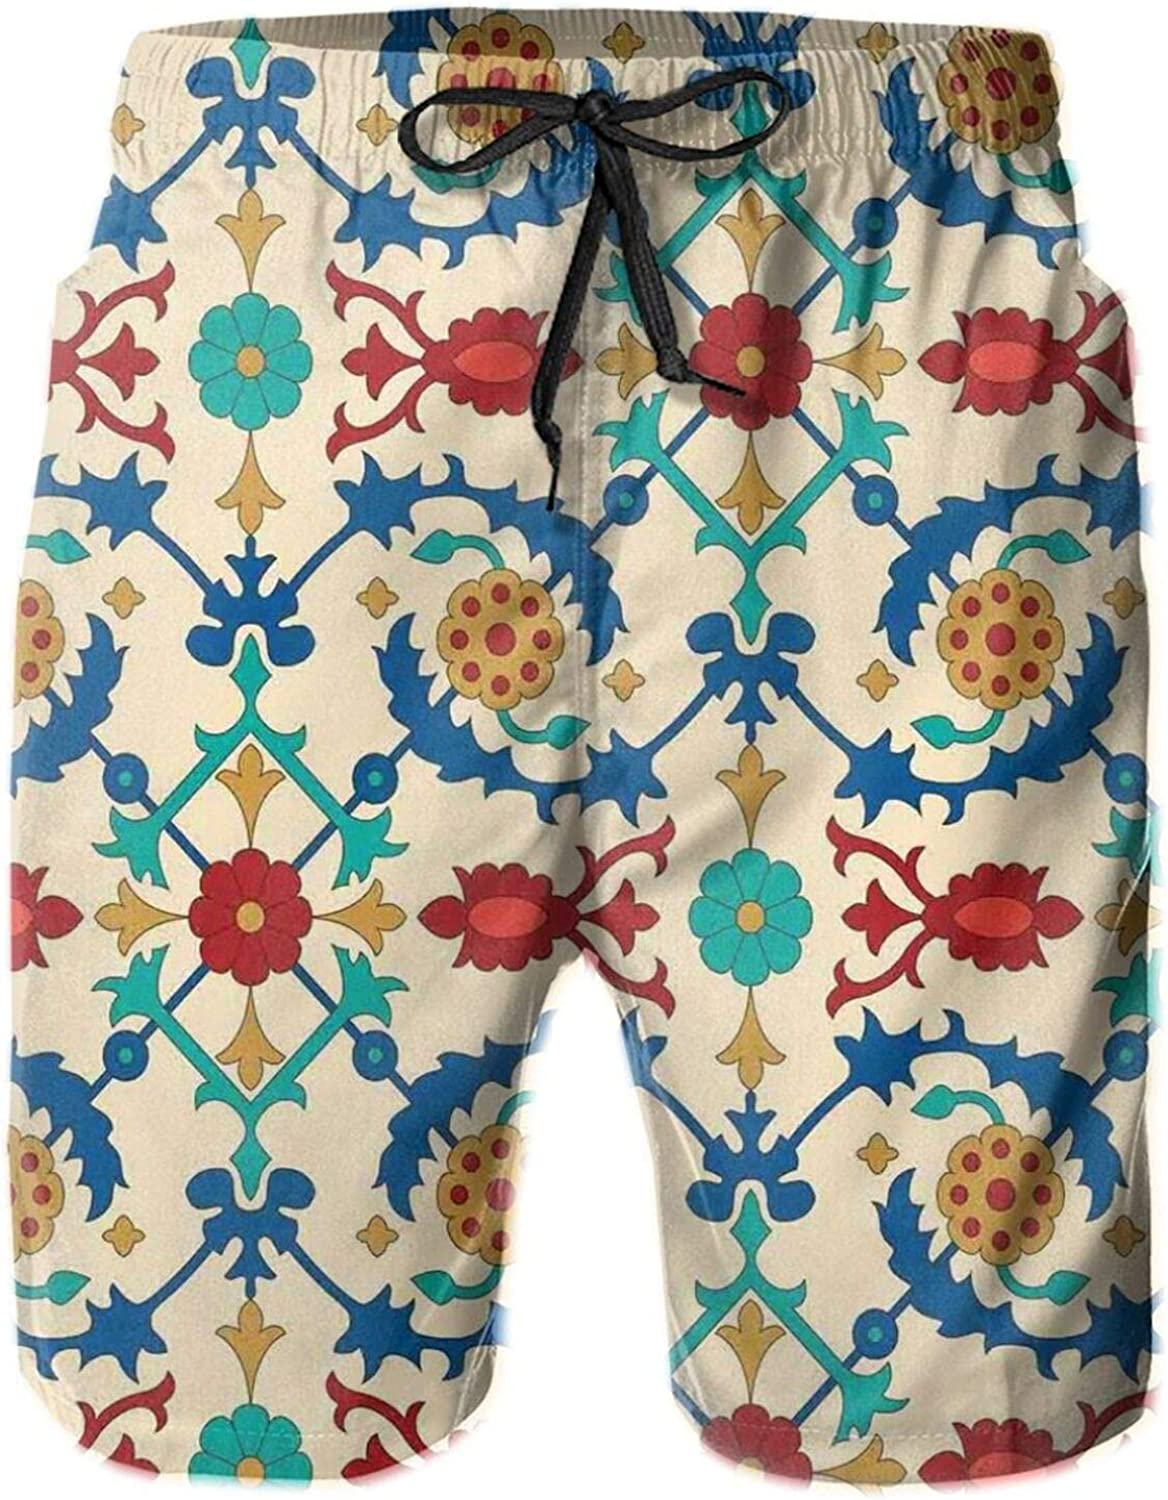 Nostalgic Eastern Art Motifs with Floral Ornaments with Baroque Inspiration Ethnic Drawstring Waist Beach Shorts for Men Swim Trucks Board Shorts with Mesh Lining,L